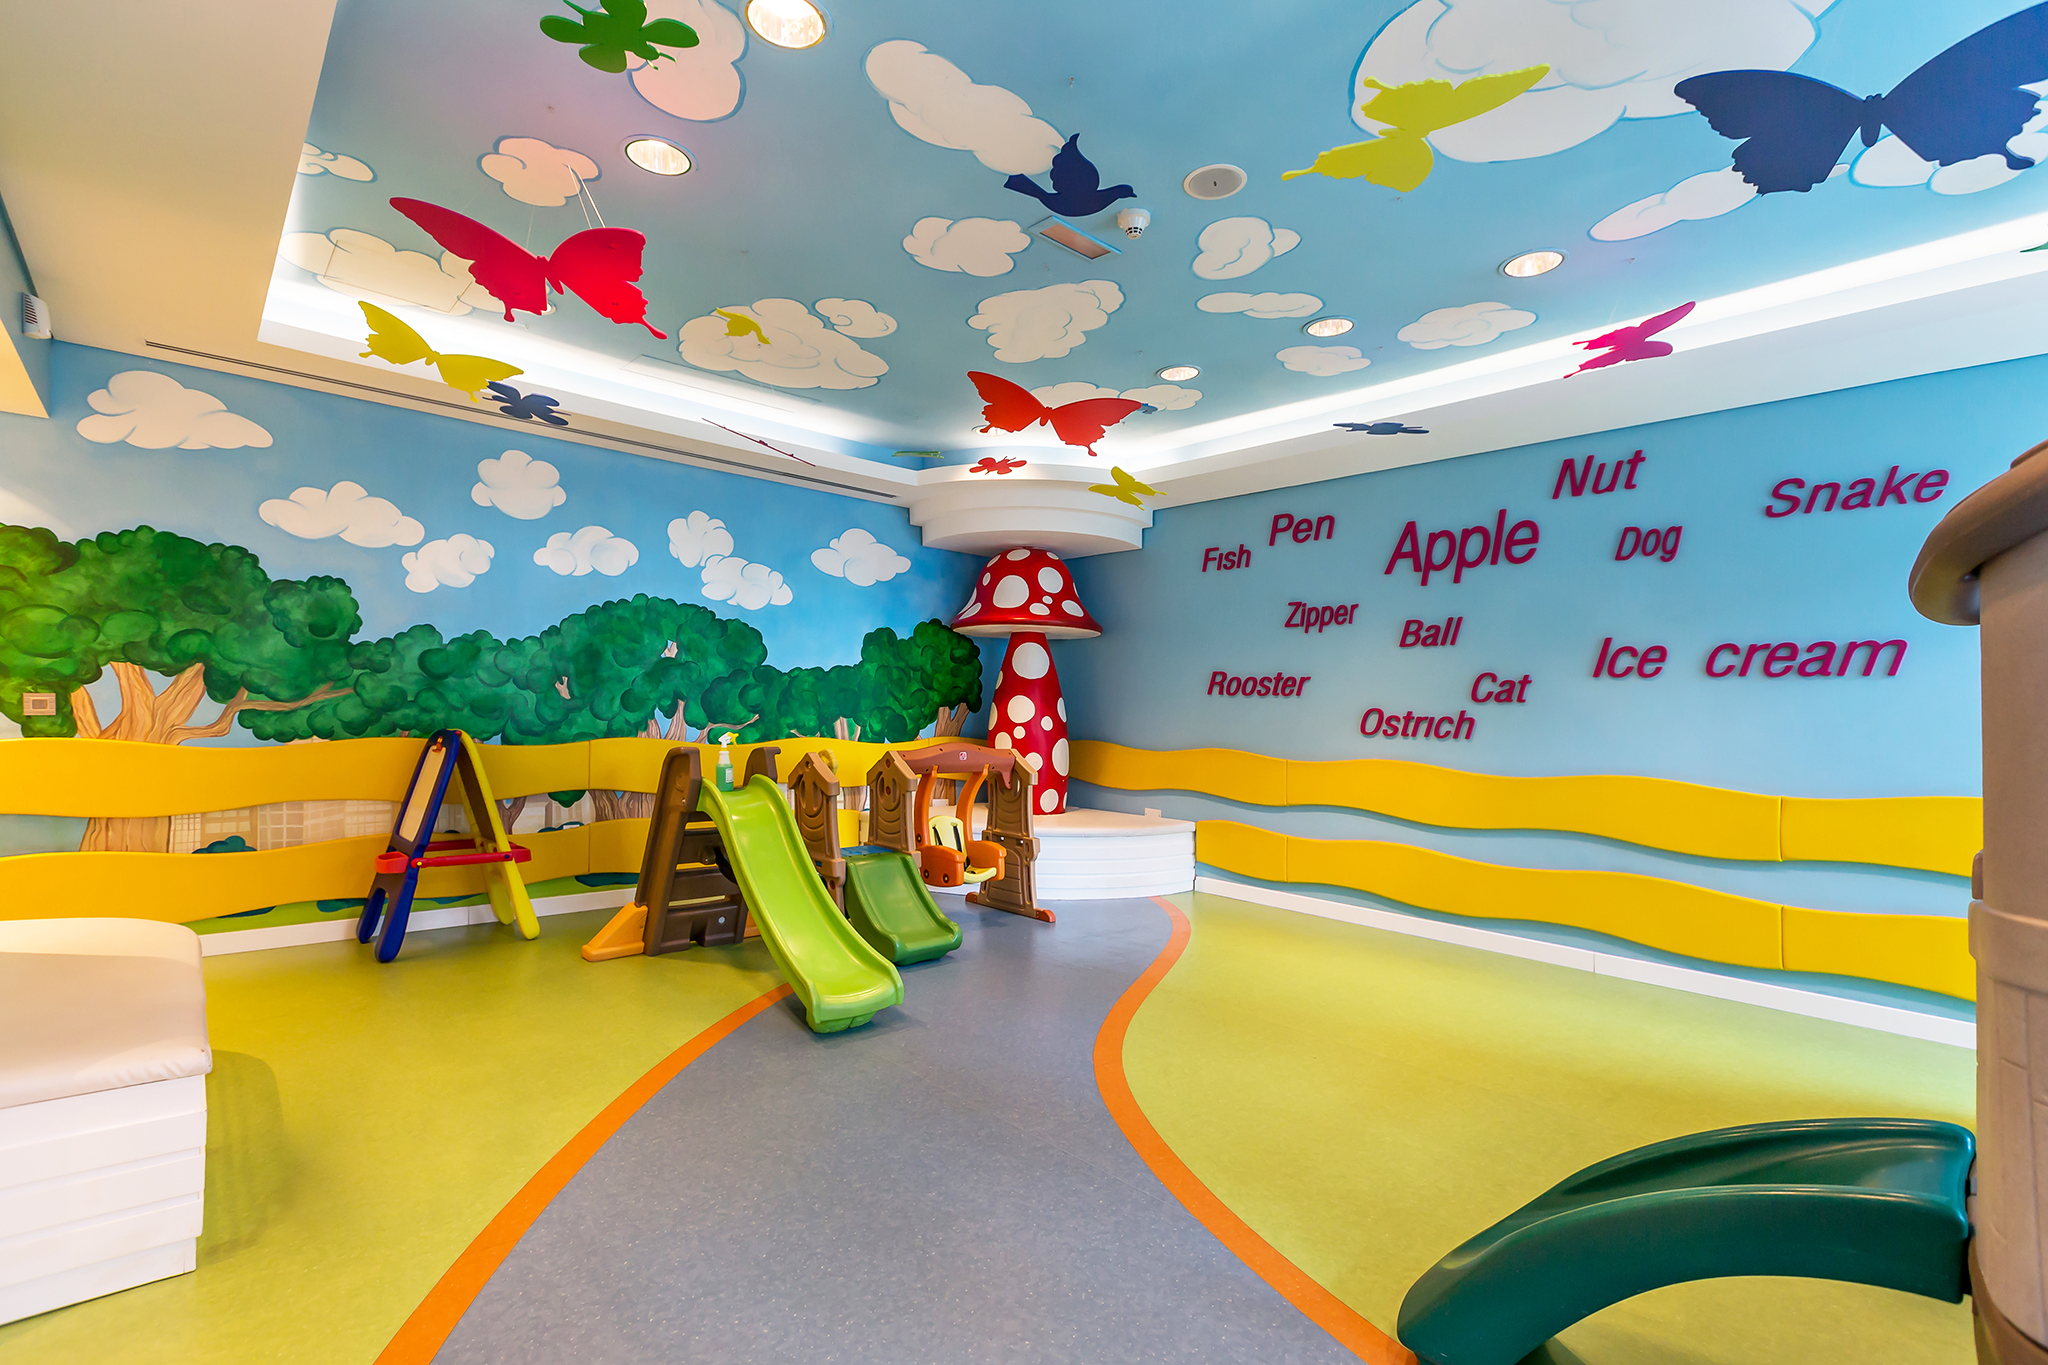 The children play area has a selection of activities to keep the little ones entertained